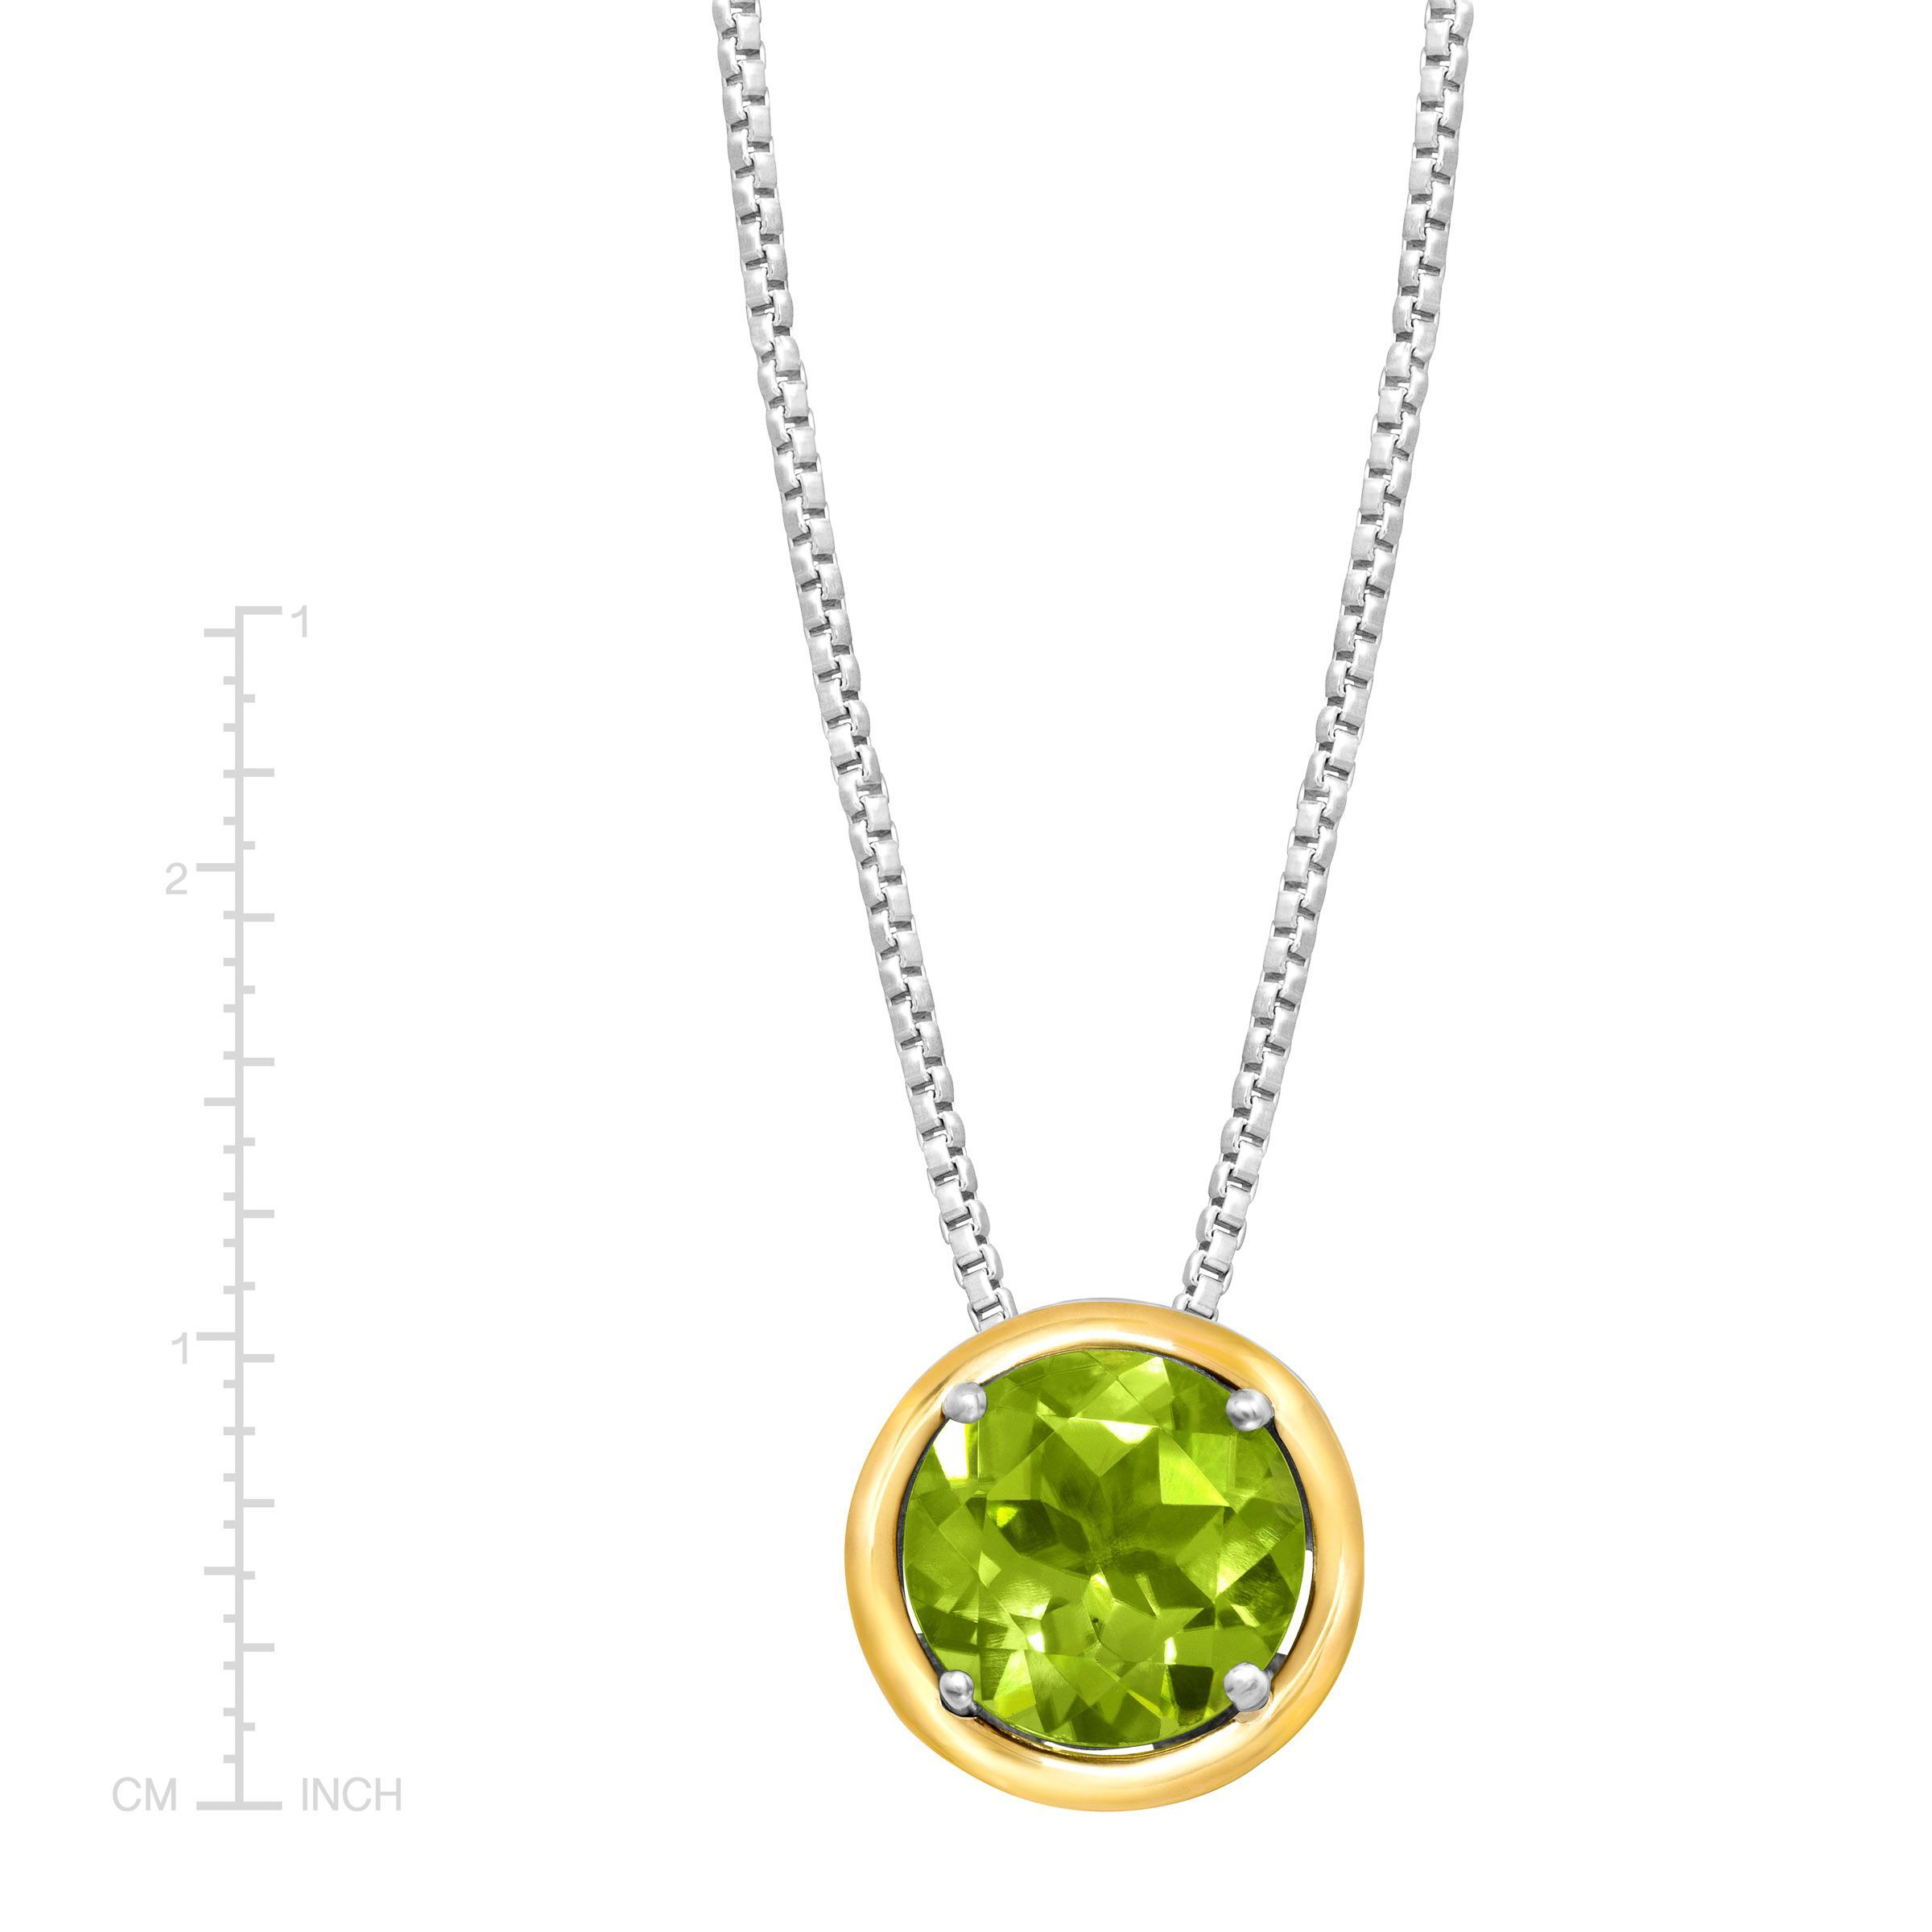 2 ct natural peridot pendant in sterling silver 14k gold 2 ct natural peridot pendant in sterling silver 14k gold aloadofball Gallery